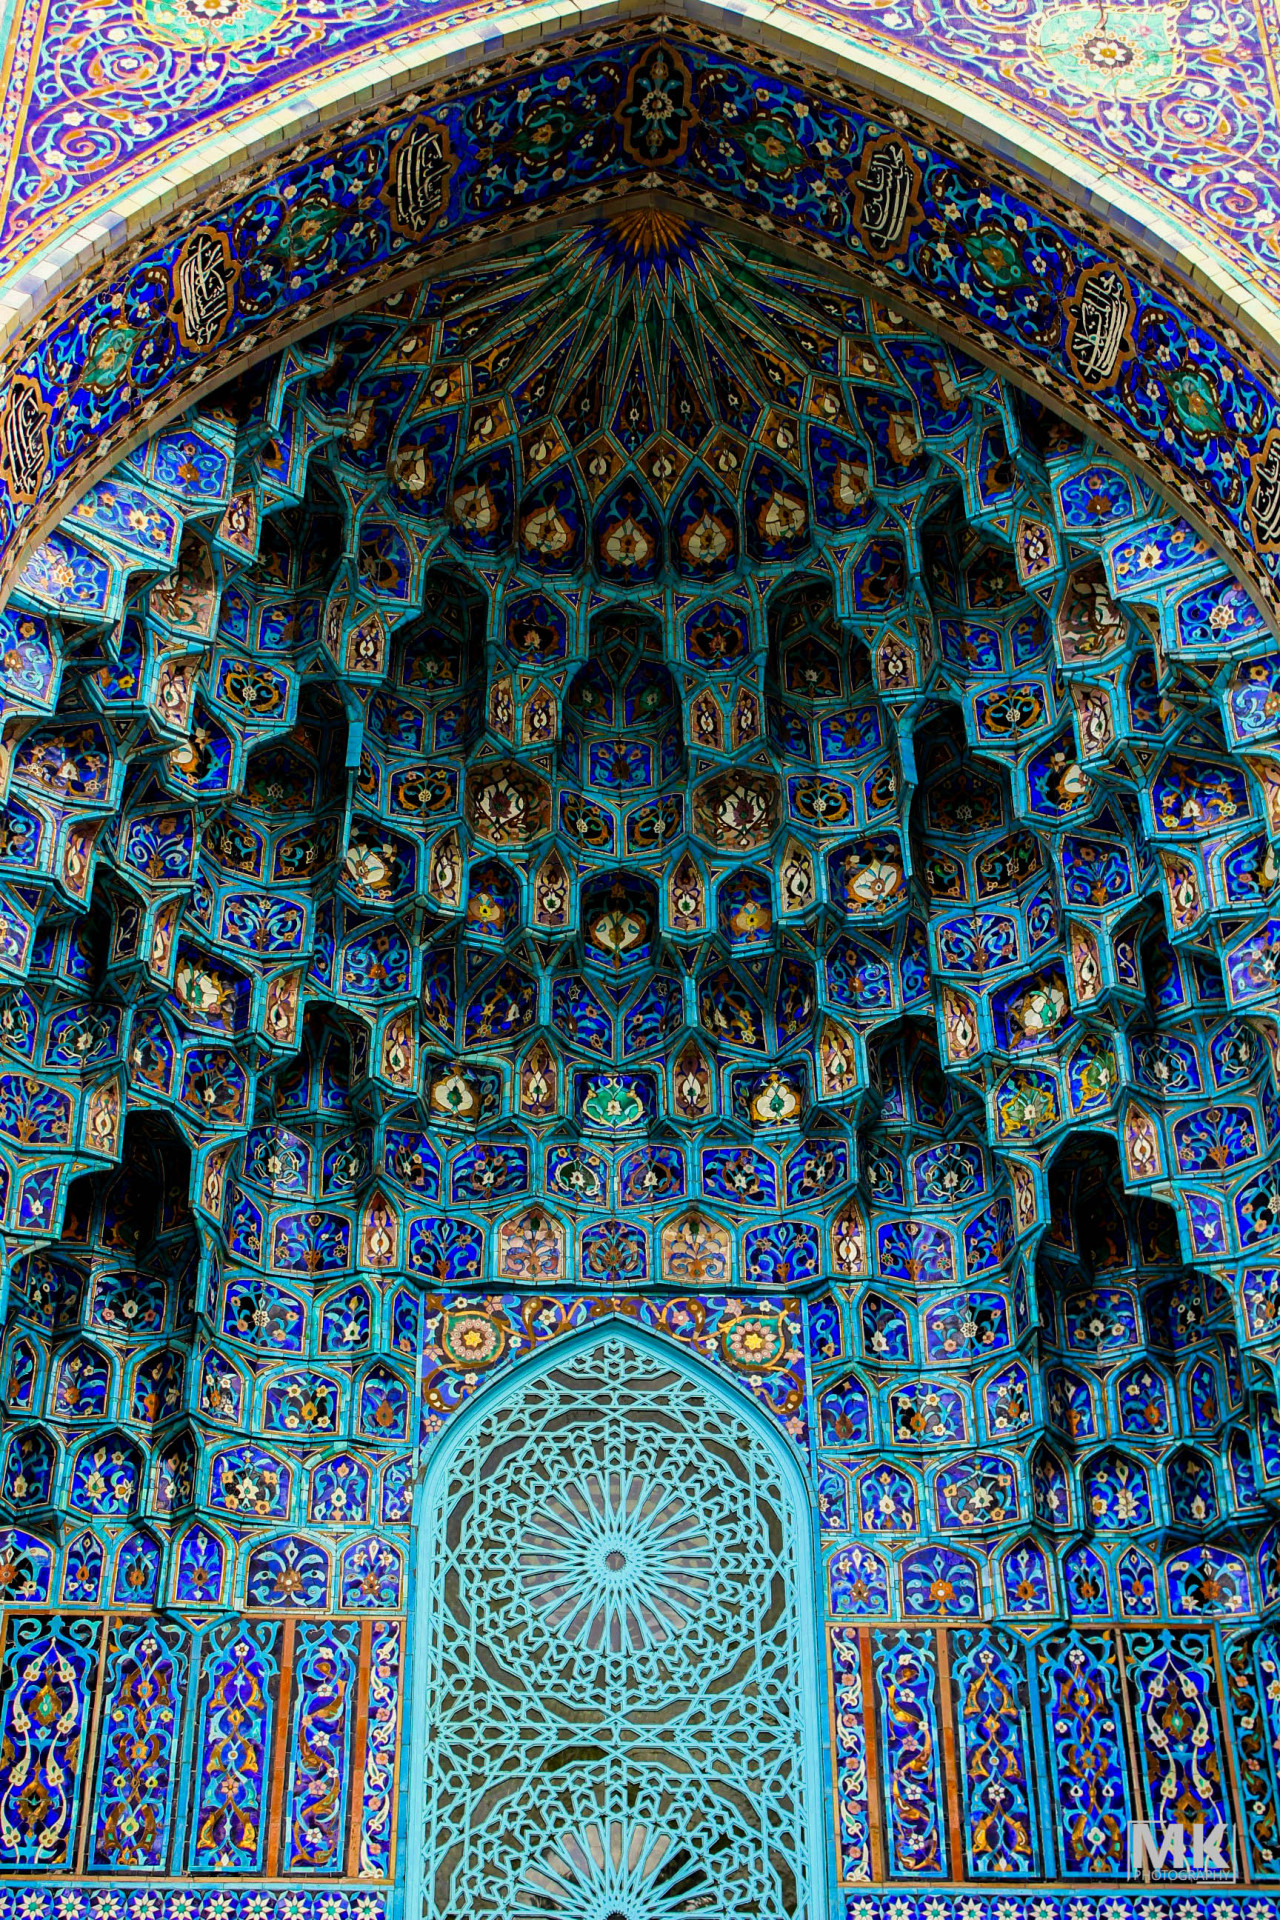 b-ellisima:  gypsyps:  brickhan:  Mosaic Art of Islamic Mosques   woch  More posts like this here ☼ ☮ ☯